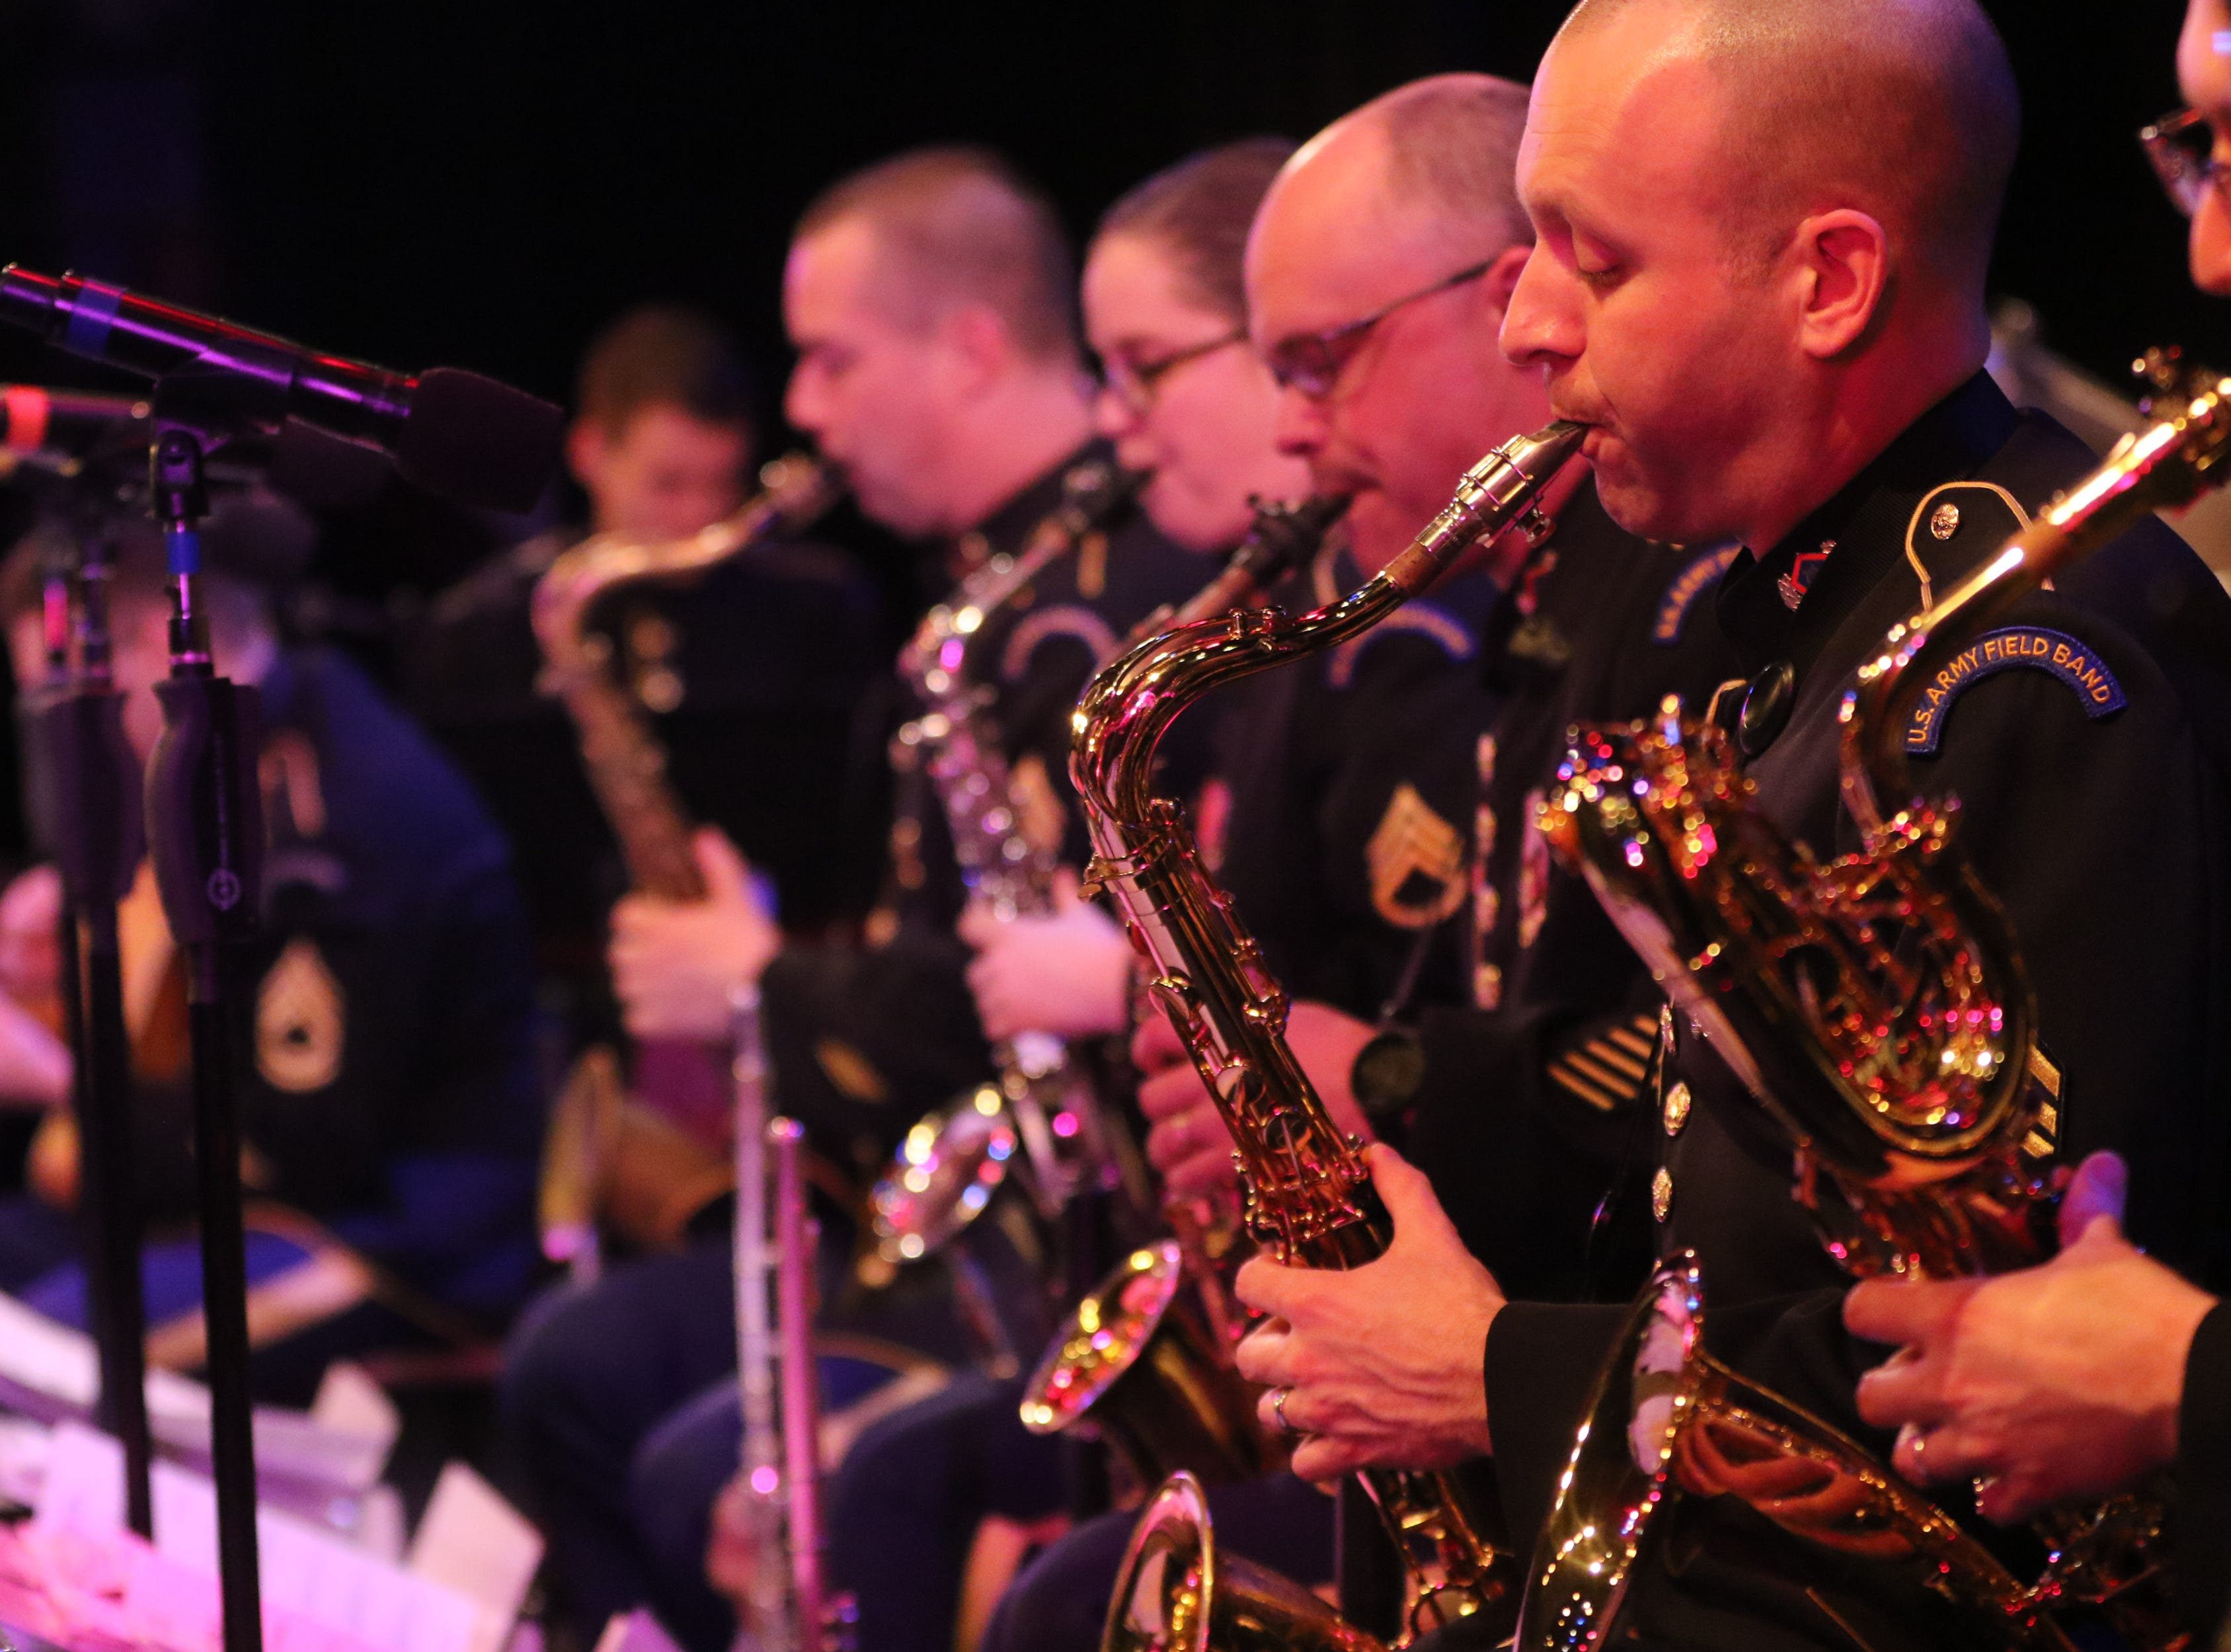 Master Sgt.Bradford Danho and others play the saxophone, in Wayne.  The United States Army Jazz Ambassadors Field Band performed at Wayne Hills High School, Thursday, March 21, 2019.  This was the eleventh day of their tour, which lasts more than a month.